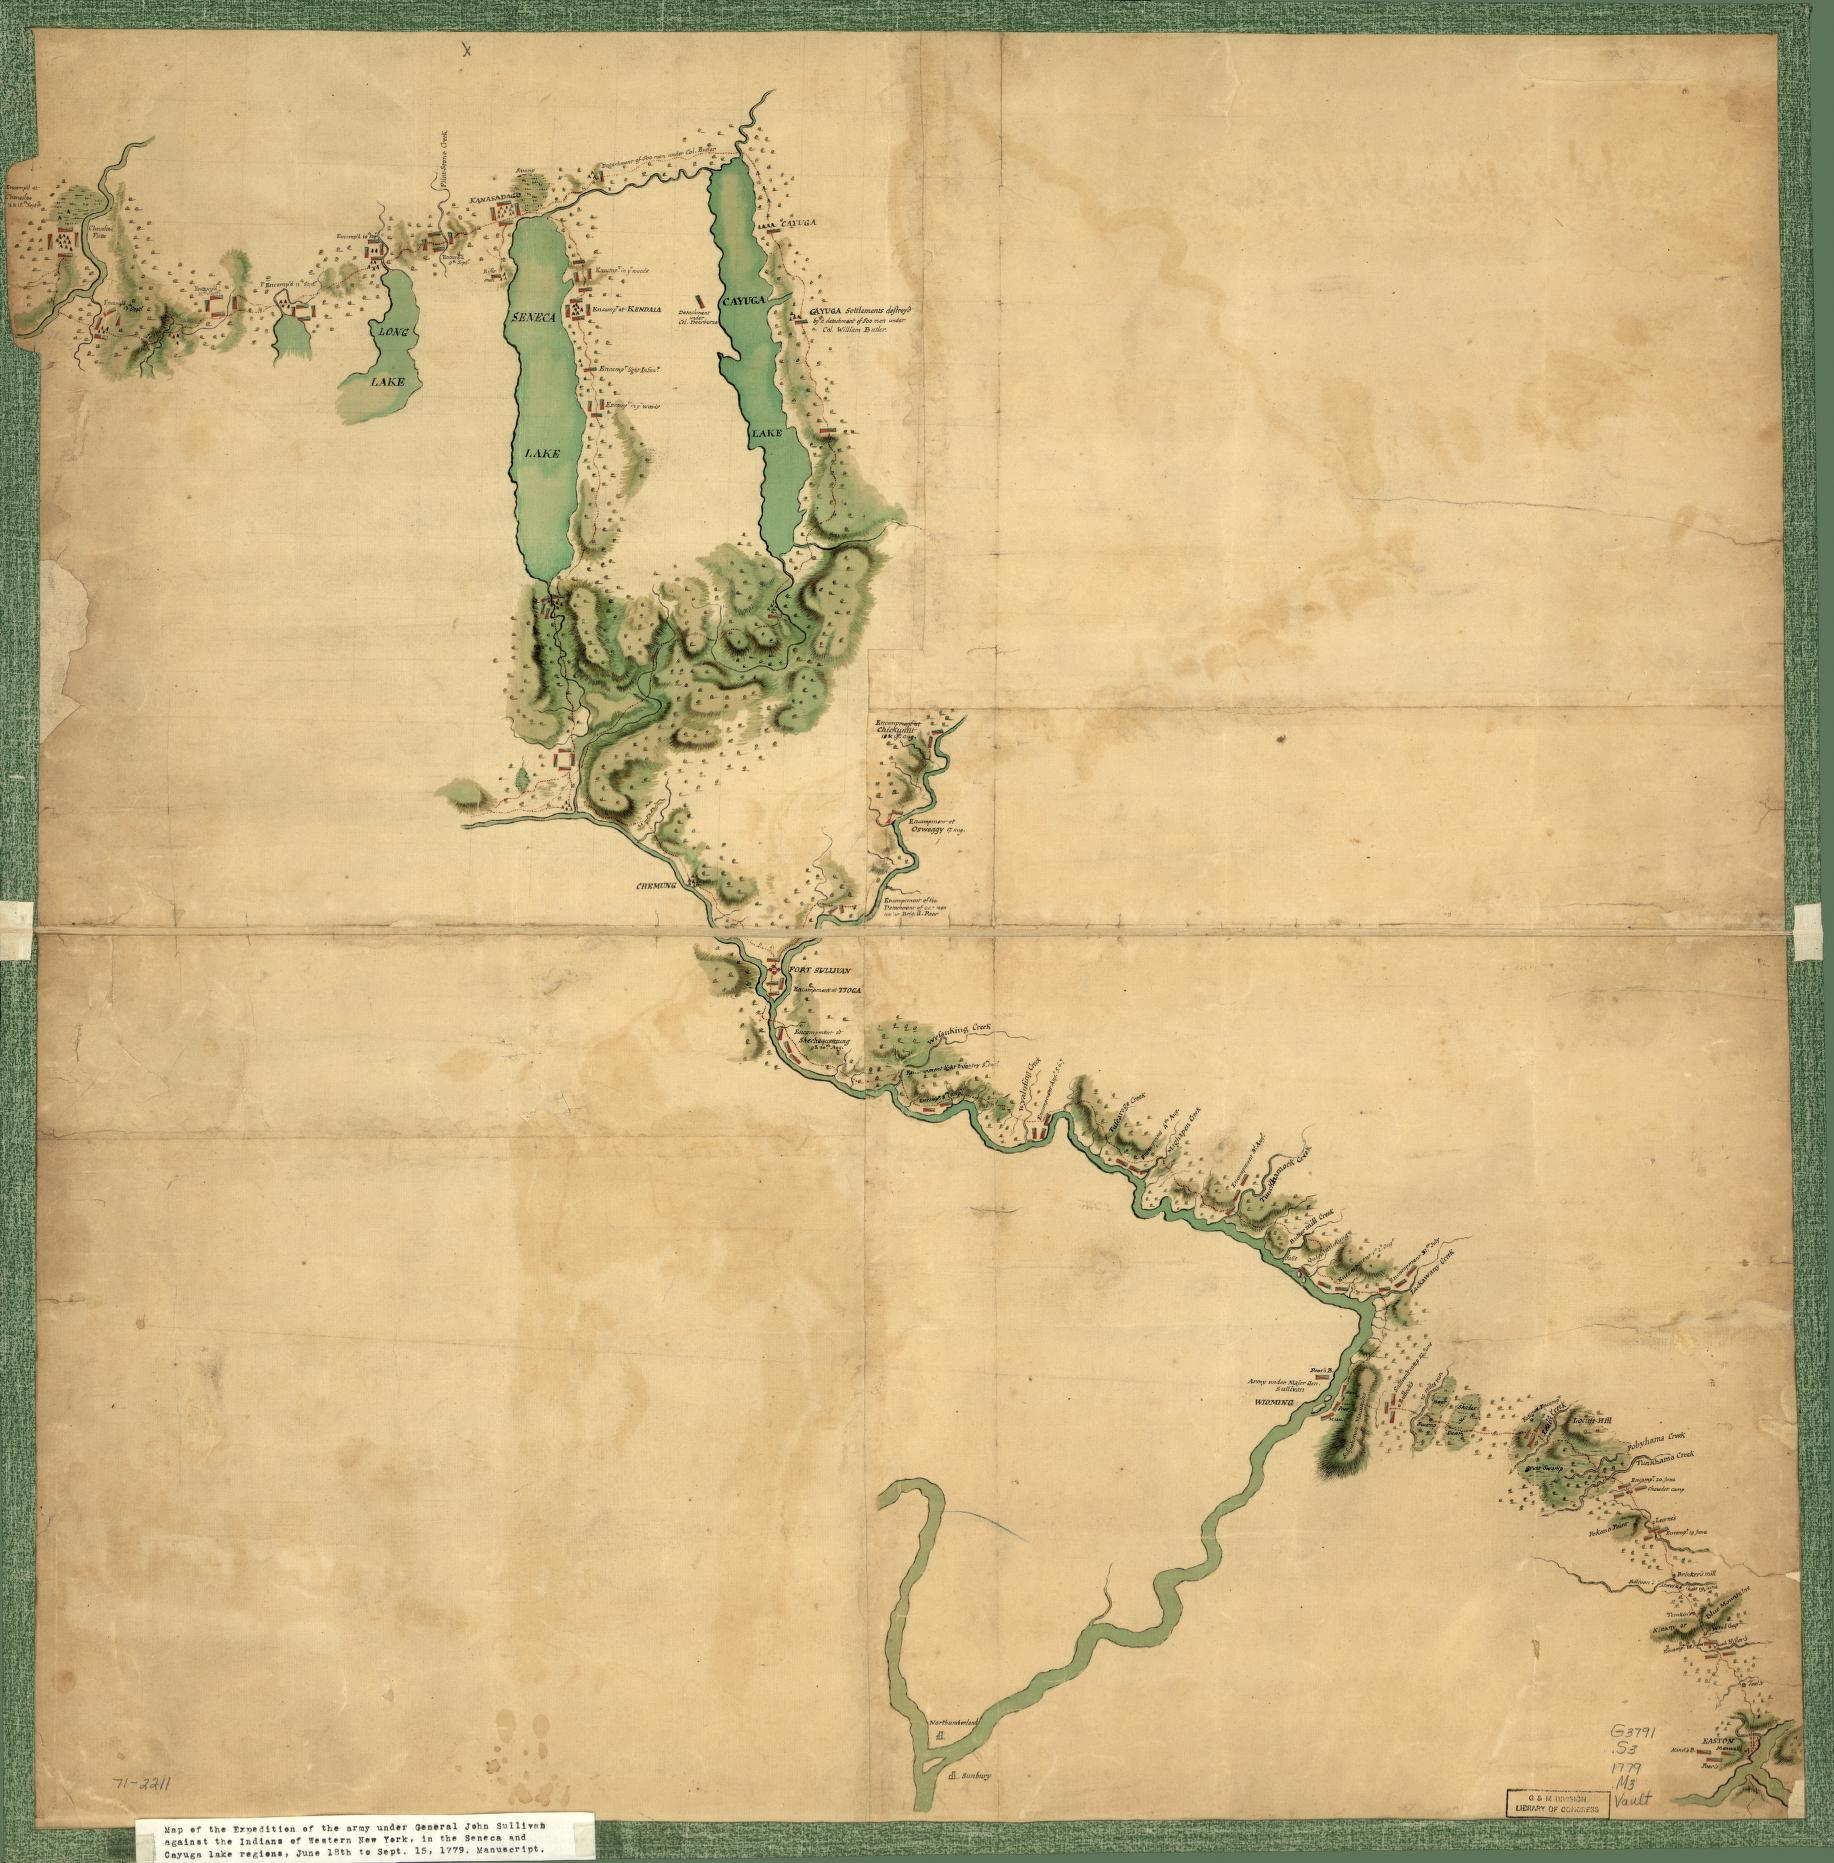 South America Map Borders%0A SULLIVAN u    S MARCH FROM EASTON TO THE SENACA  u     CAYUGA COUNTRIES  This  untitled and anonymous manuscript map bears this pasted on title given by  the Library of